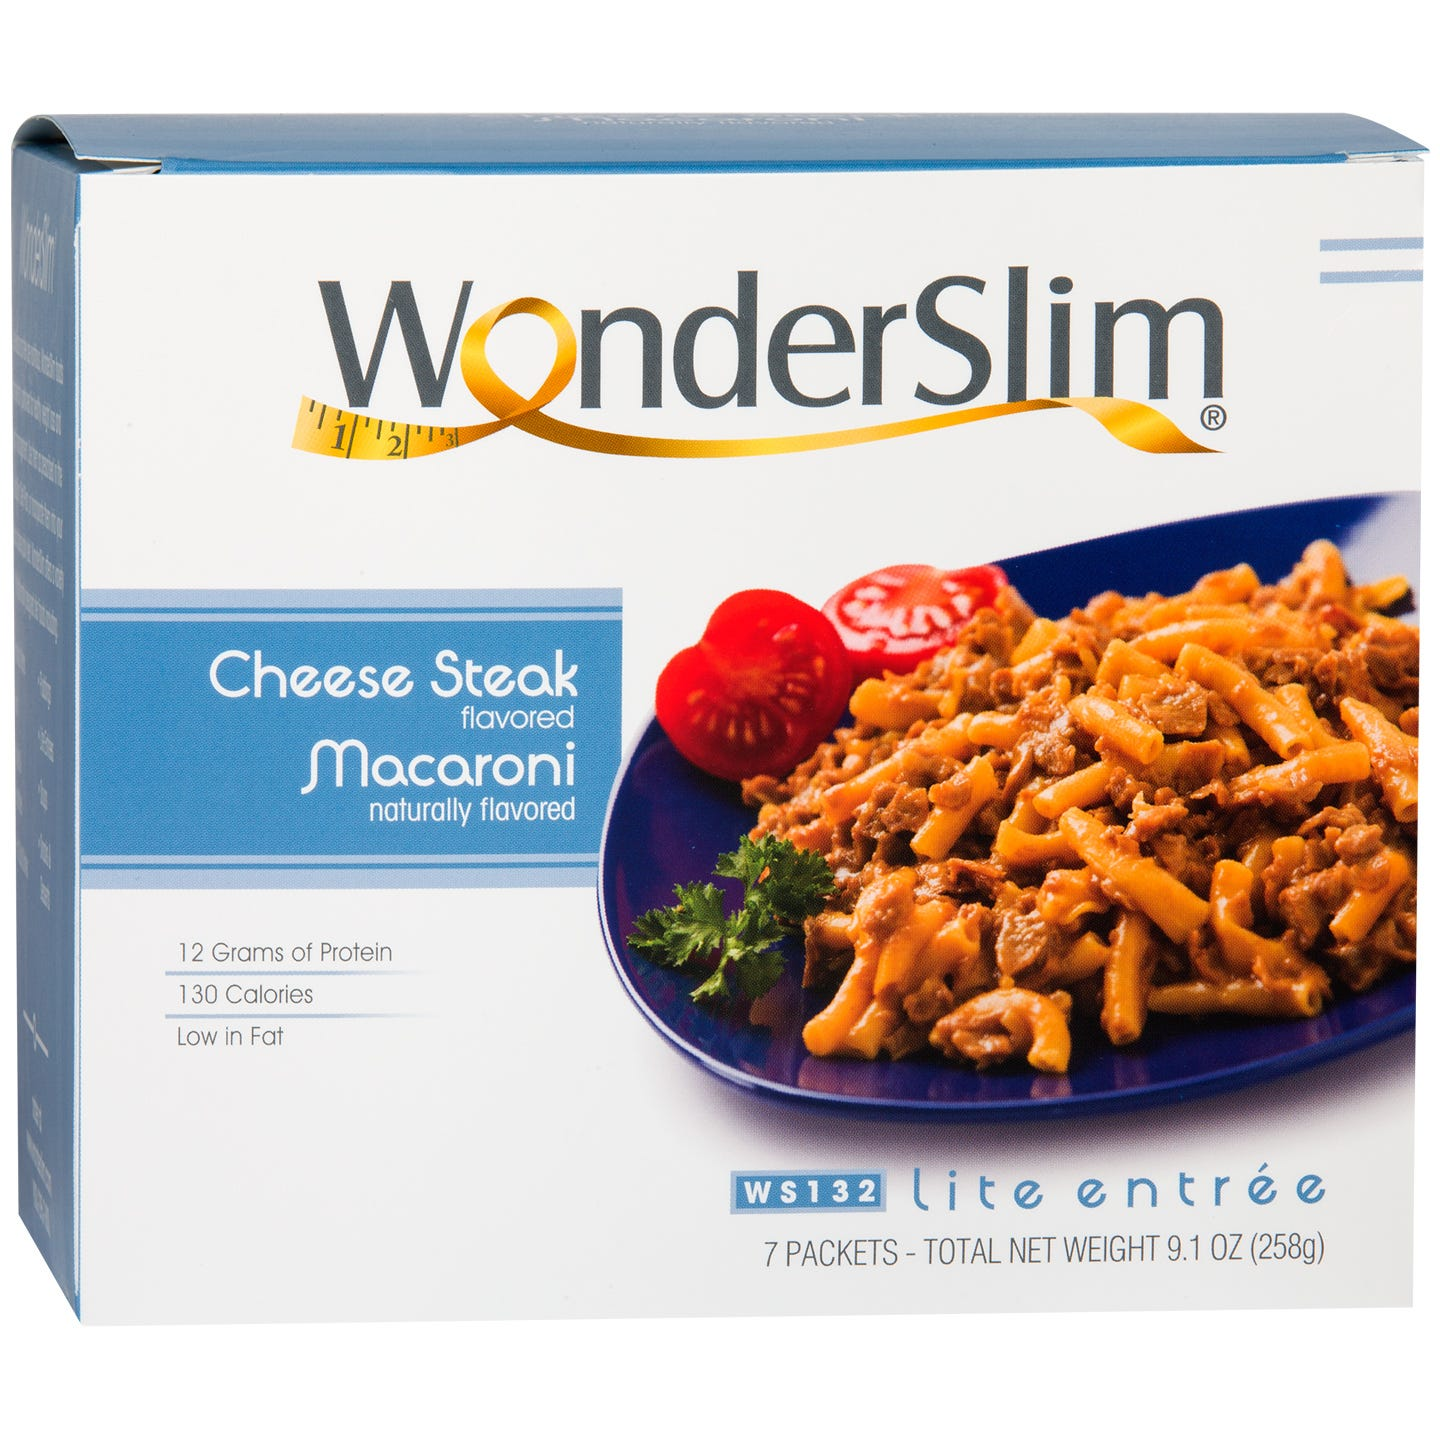 WonderSlim Cheese Steak Macaroni Lite Entree (7 Ct)